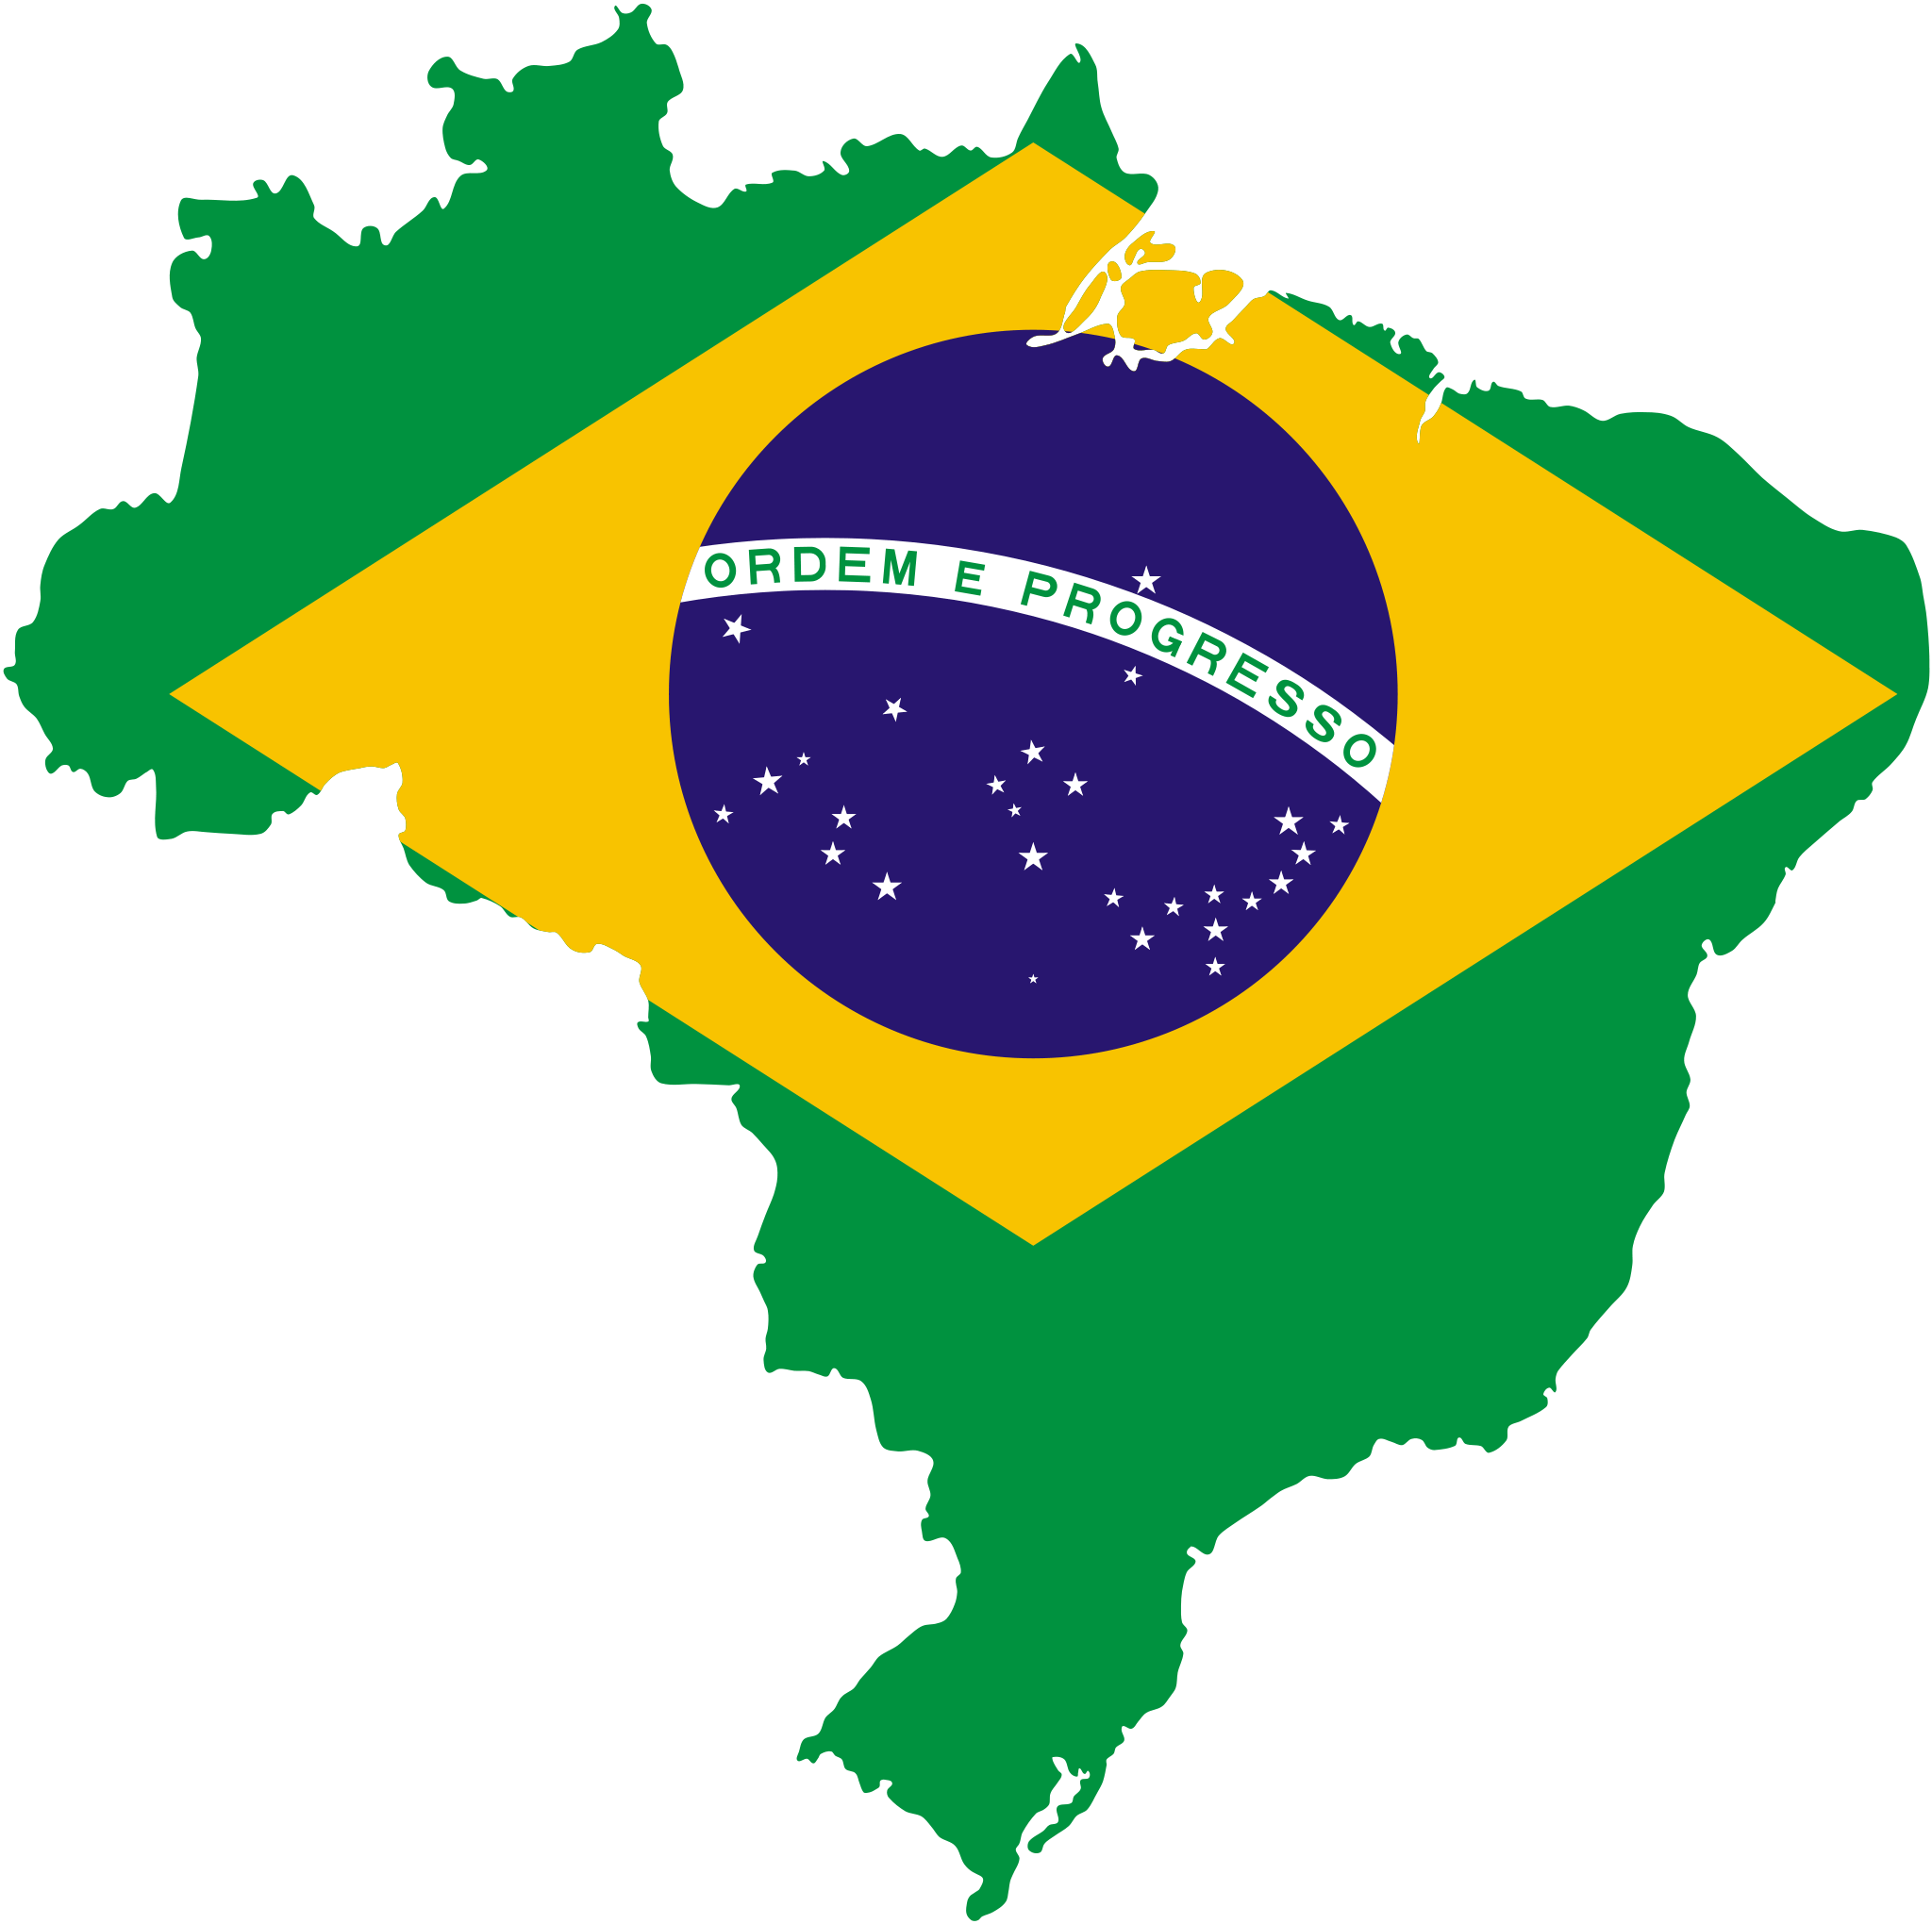 Brazil Latin American Democracy